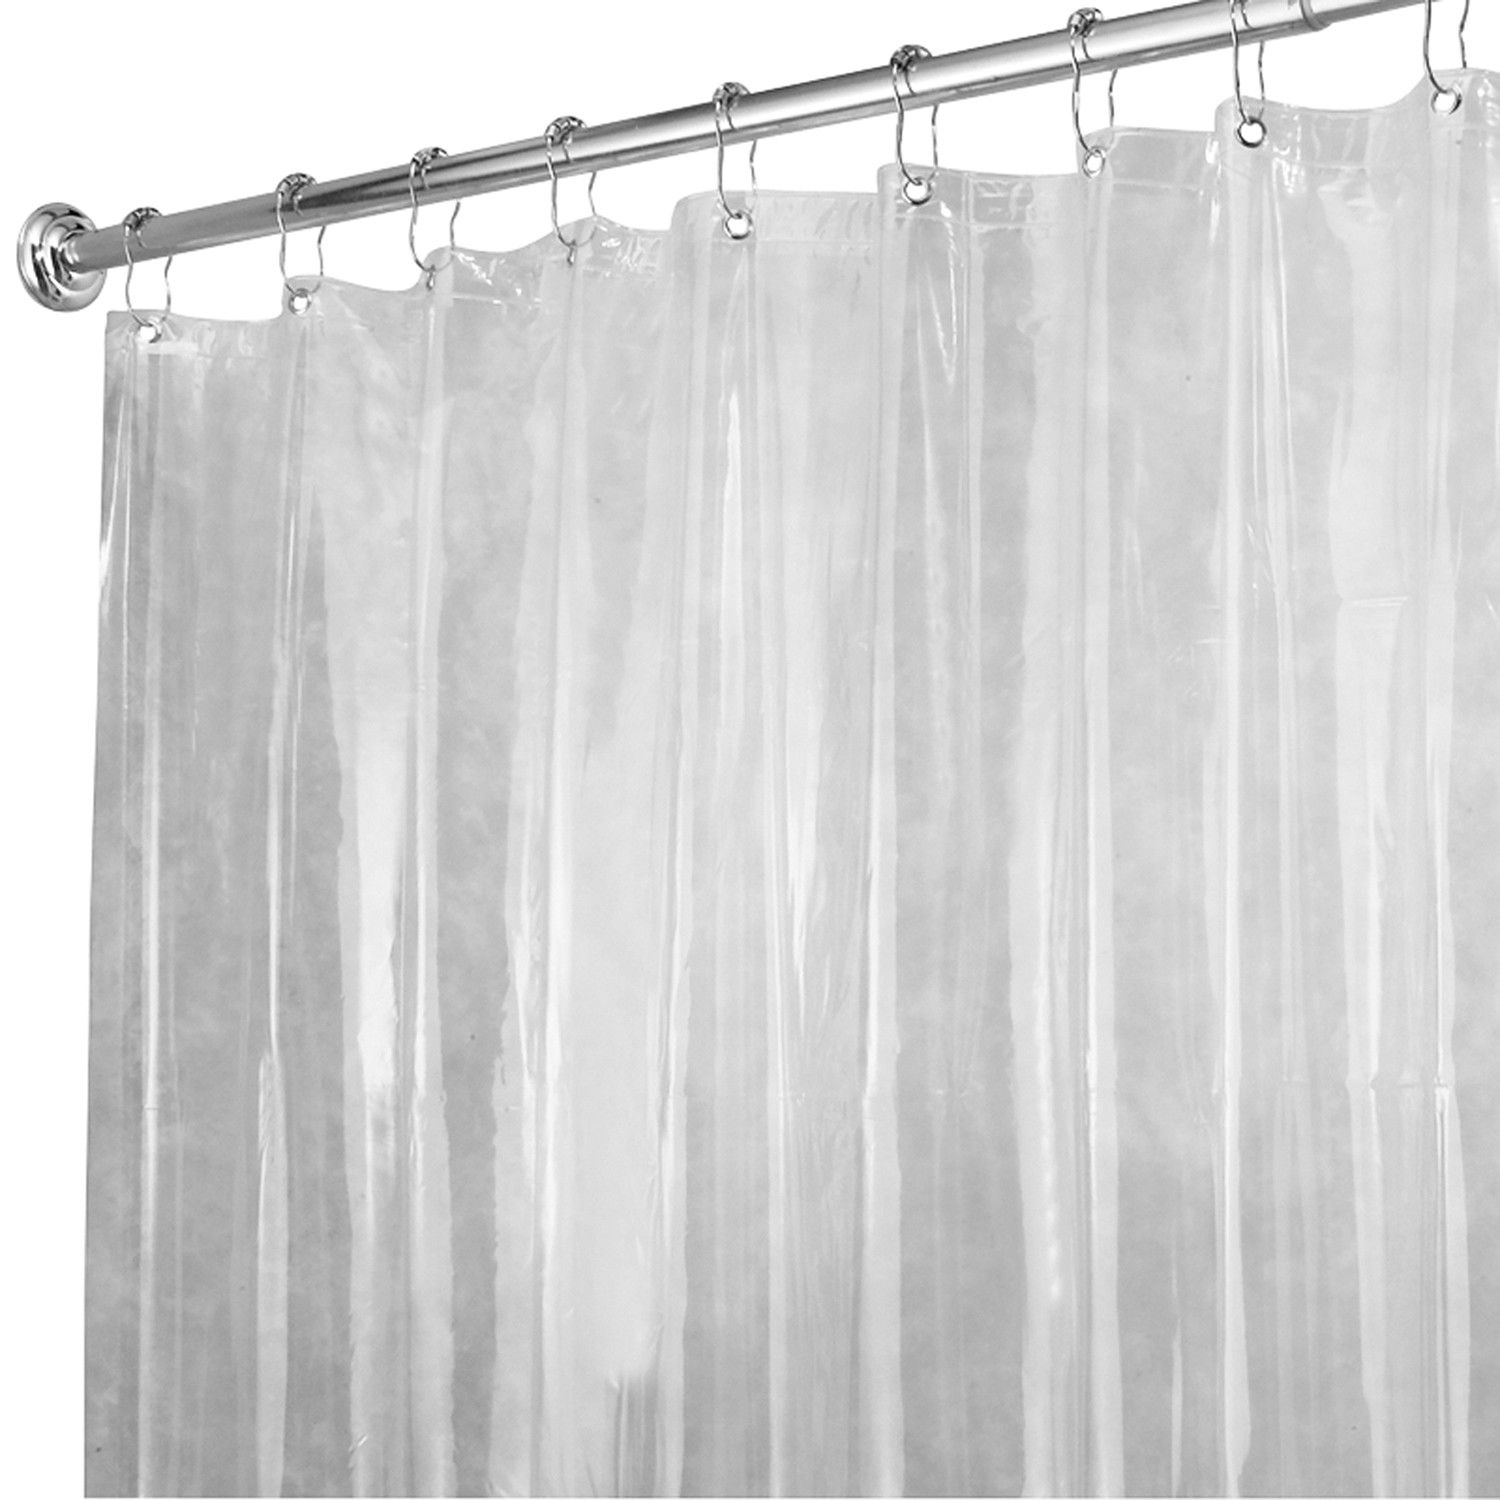 Gregoire Damask Single Shower Curtain Vinyl Shower Curtains